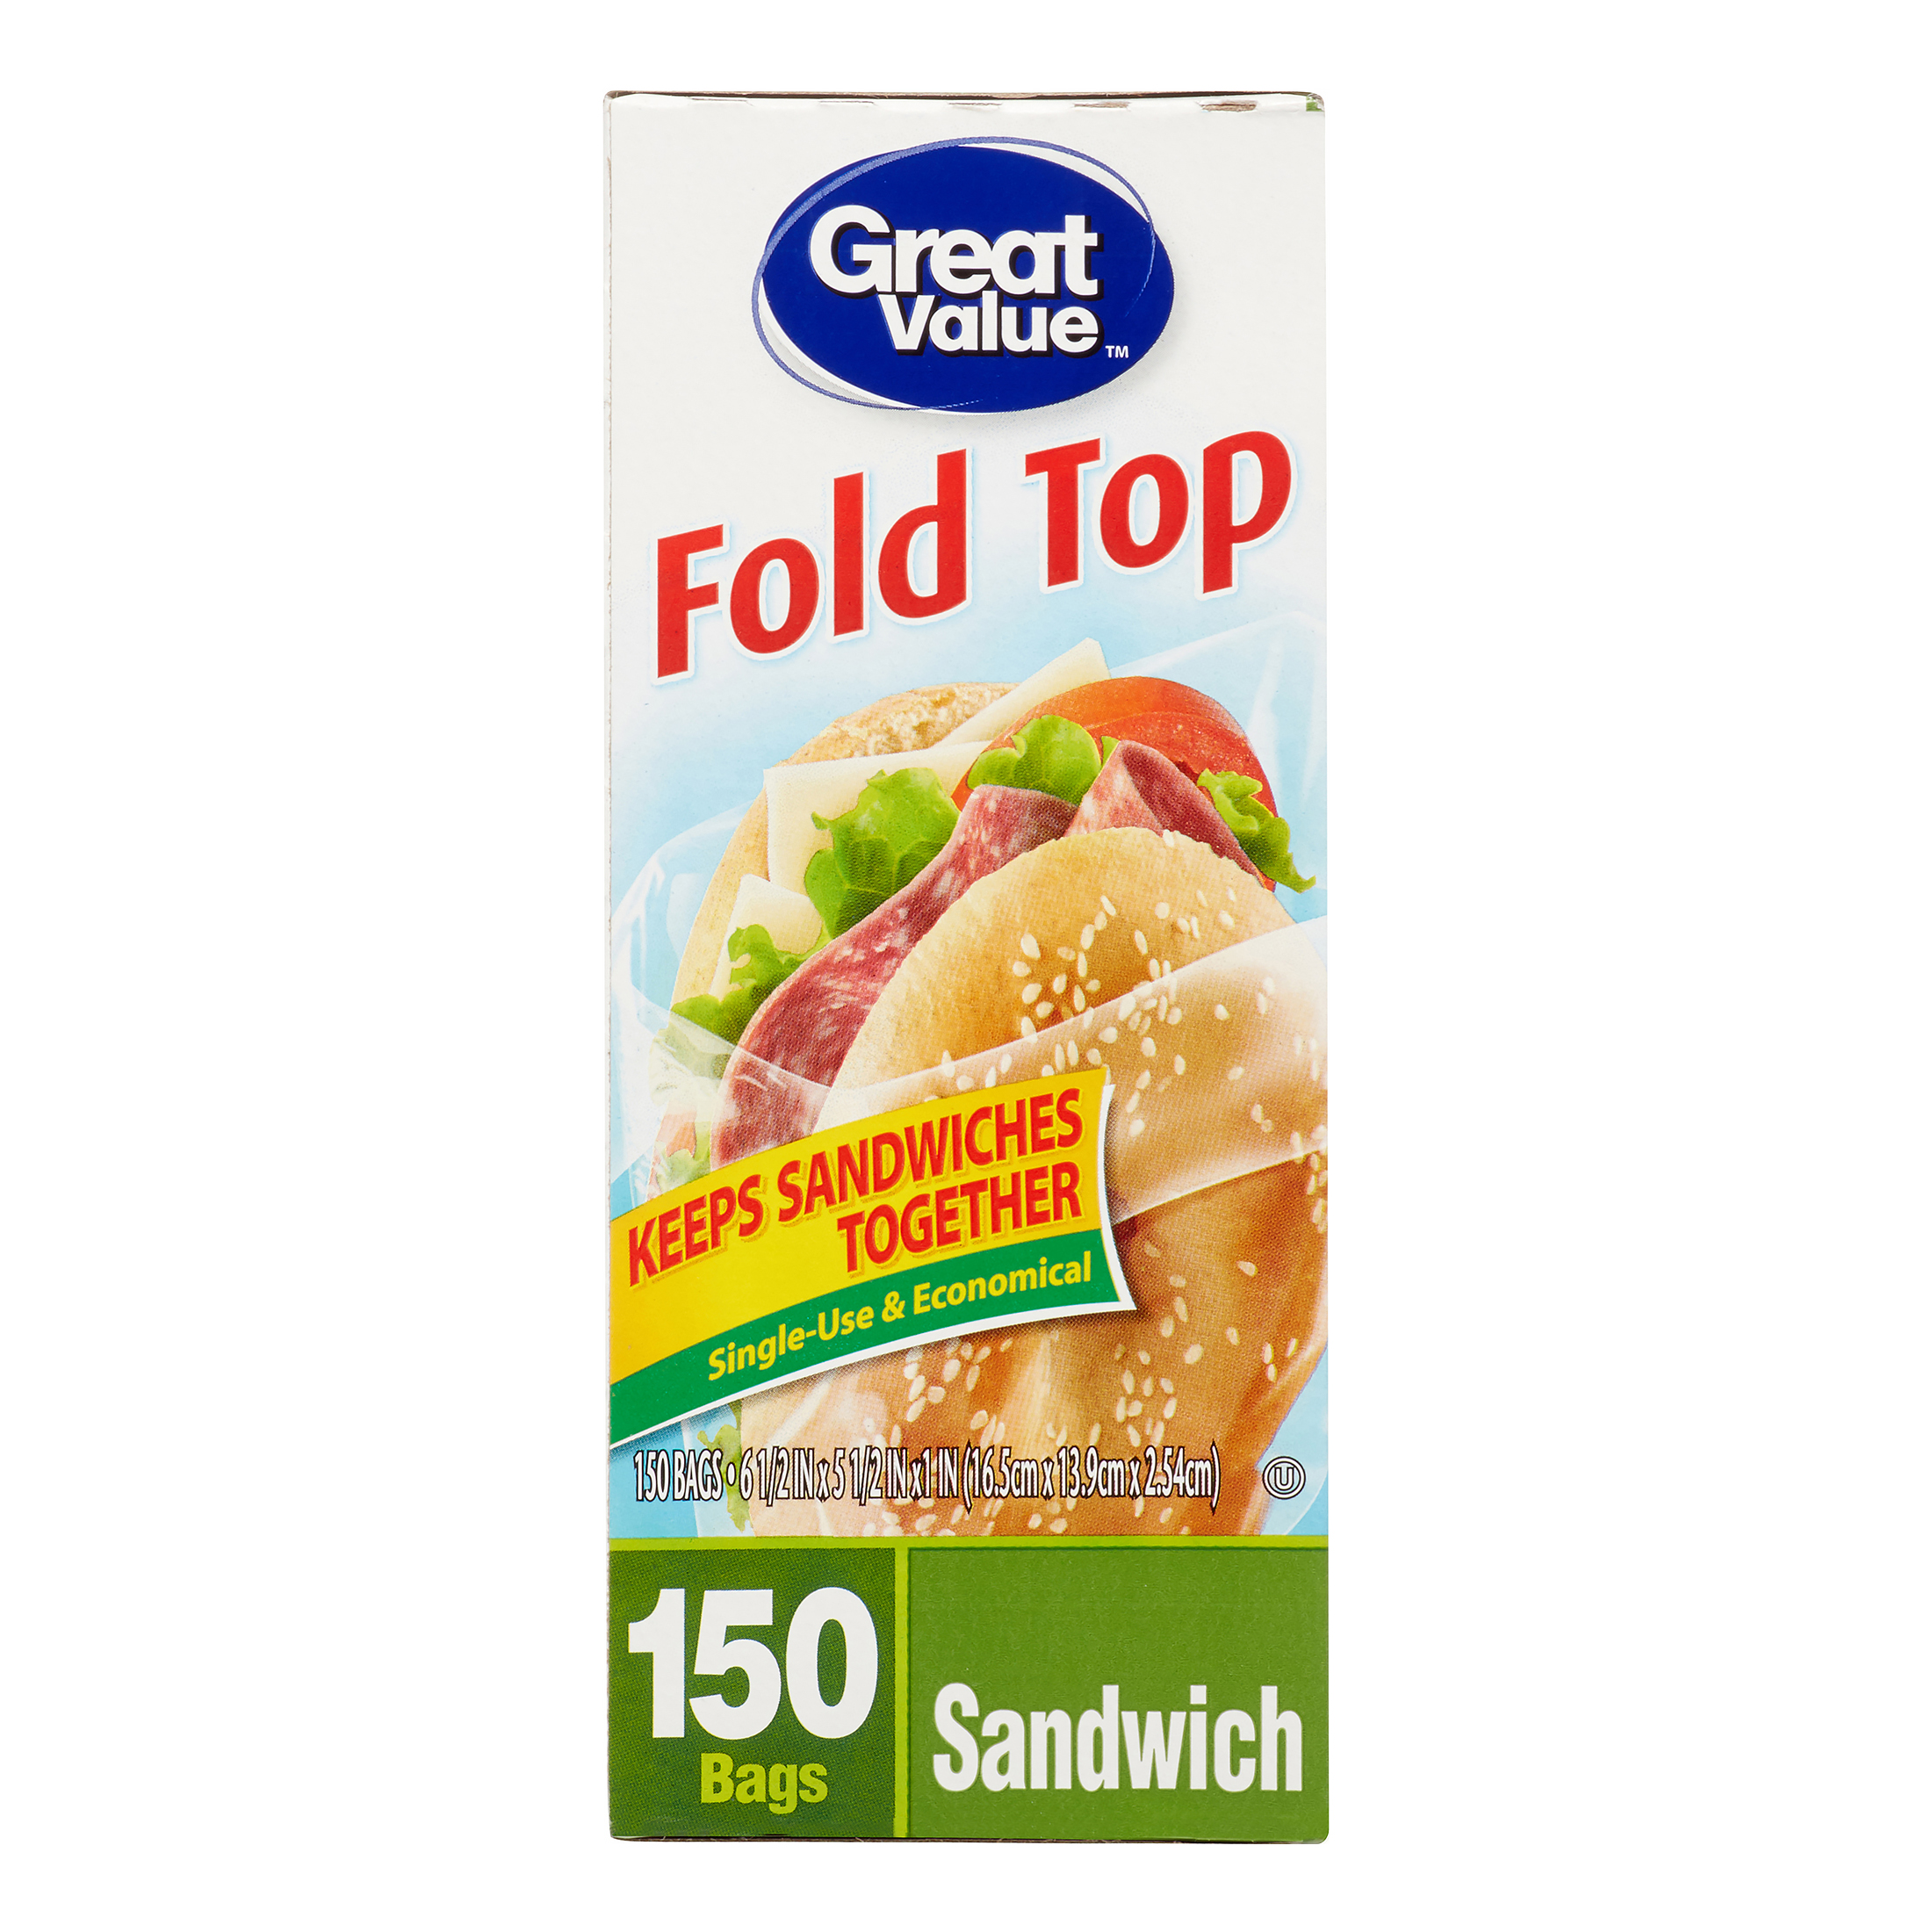 Great Value Fold Top Sandwich Bags, Sandwich, 150 count